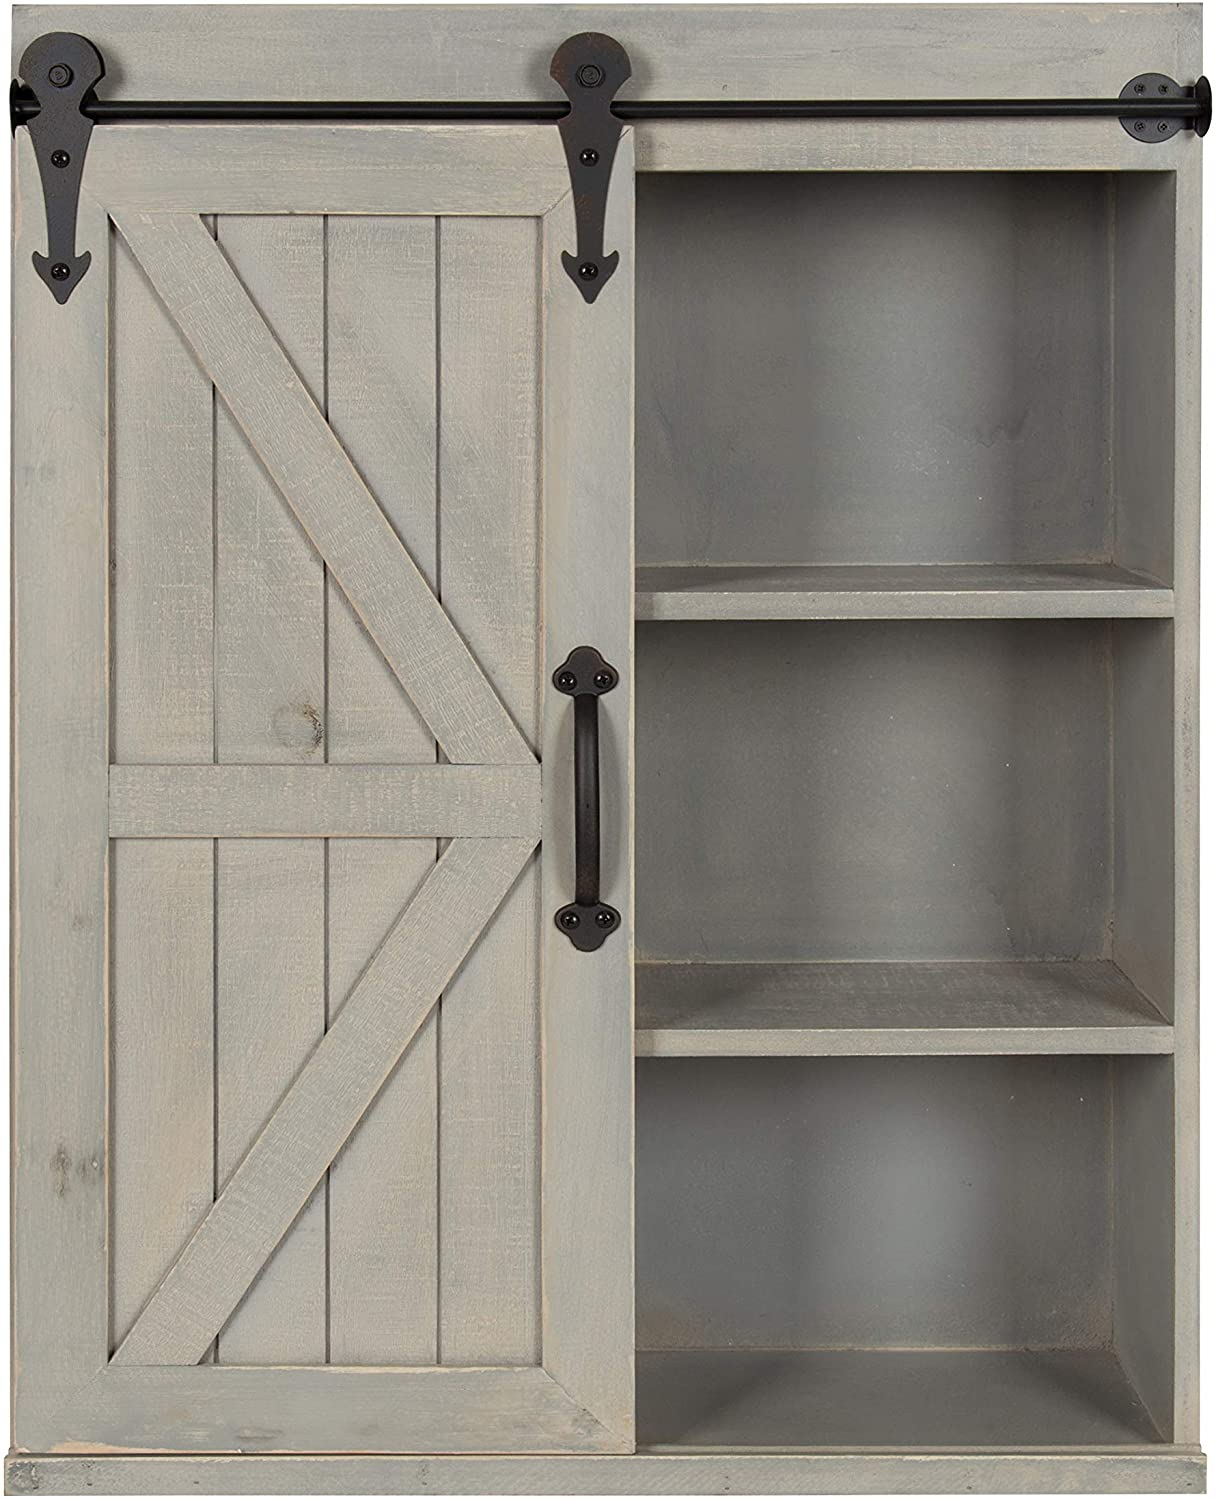 Amazon Com Kate And Laurel Cates Decorative Wood Wall Storage Cabinet With Sliding Barn Door Rustic Gray Home Kitchen